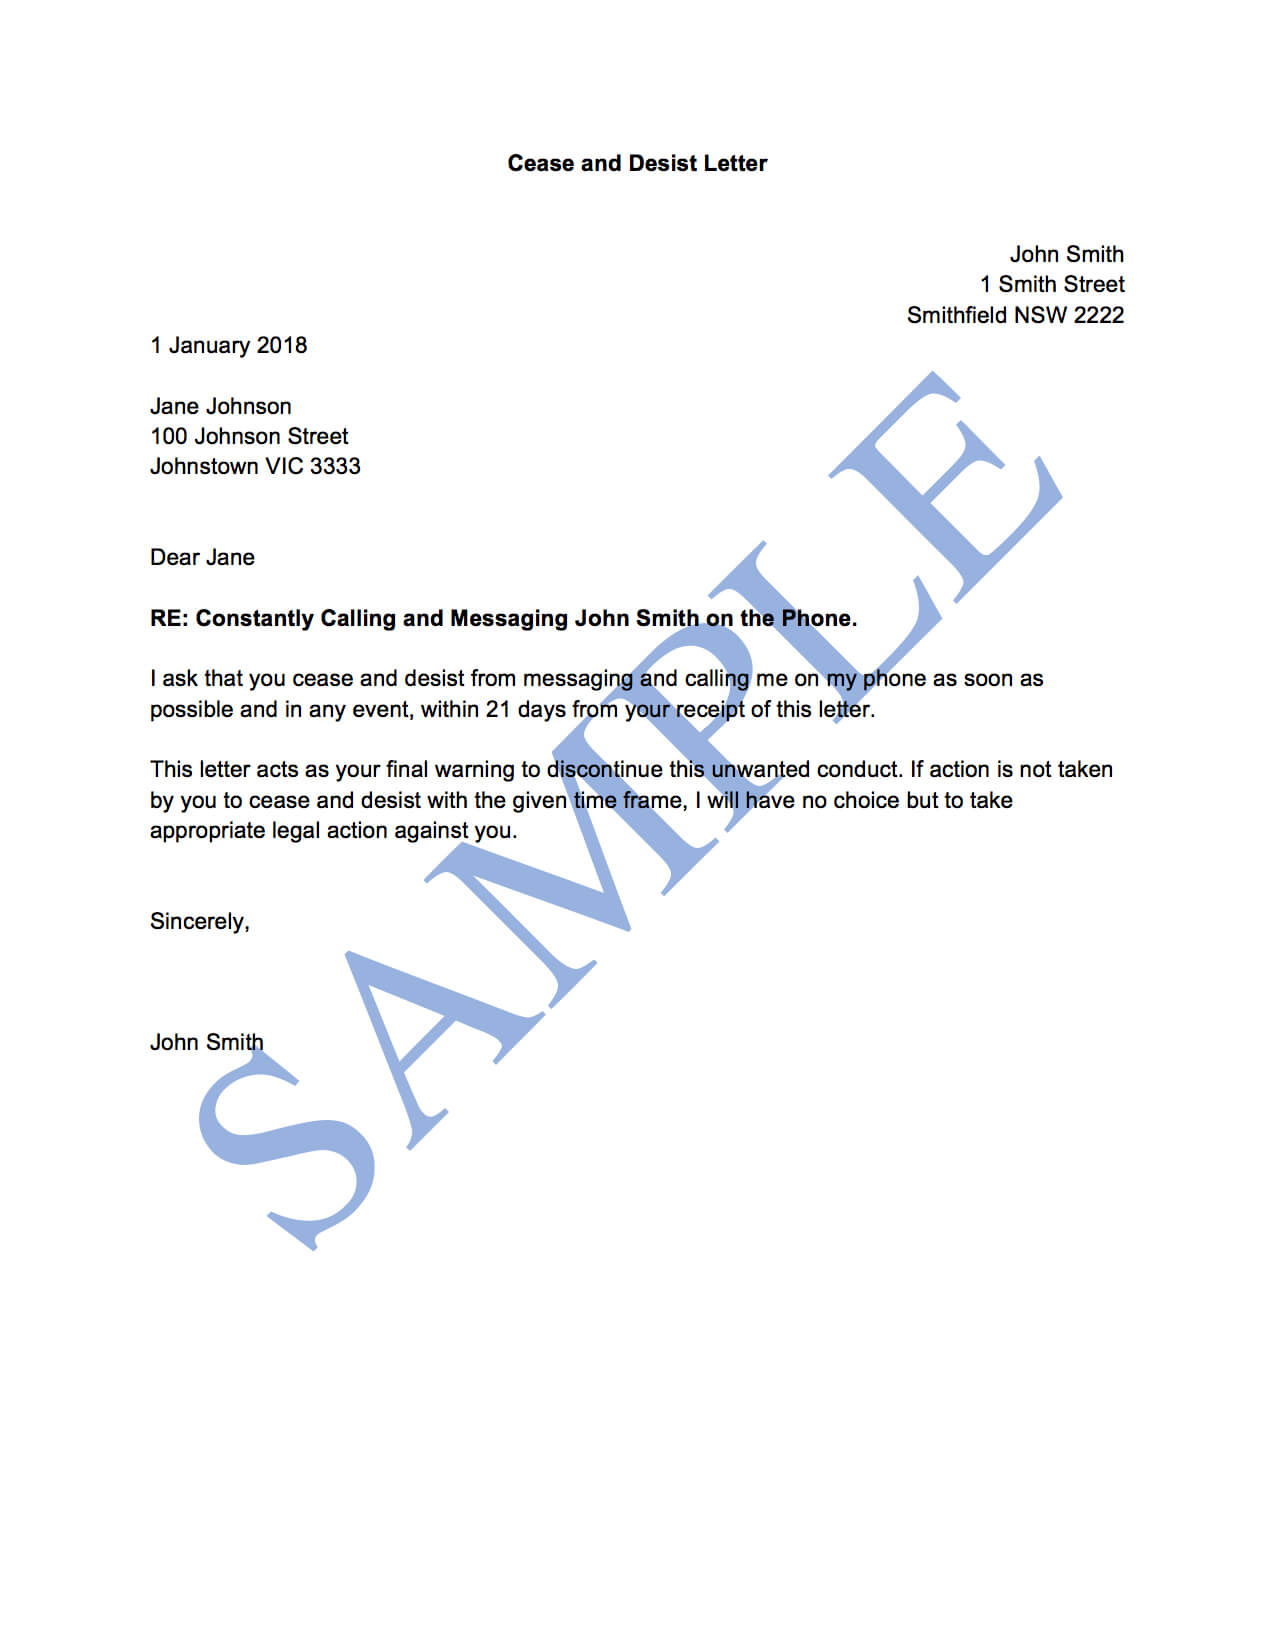 Cease And Desist Letter (General) - Free Template | Sample With Regard To Cease And Desist Letter Template Australia